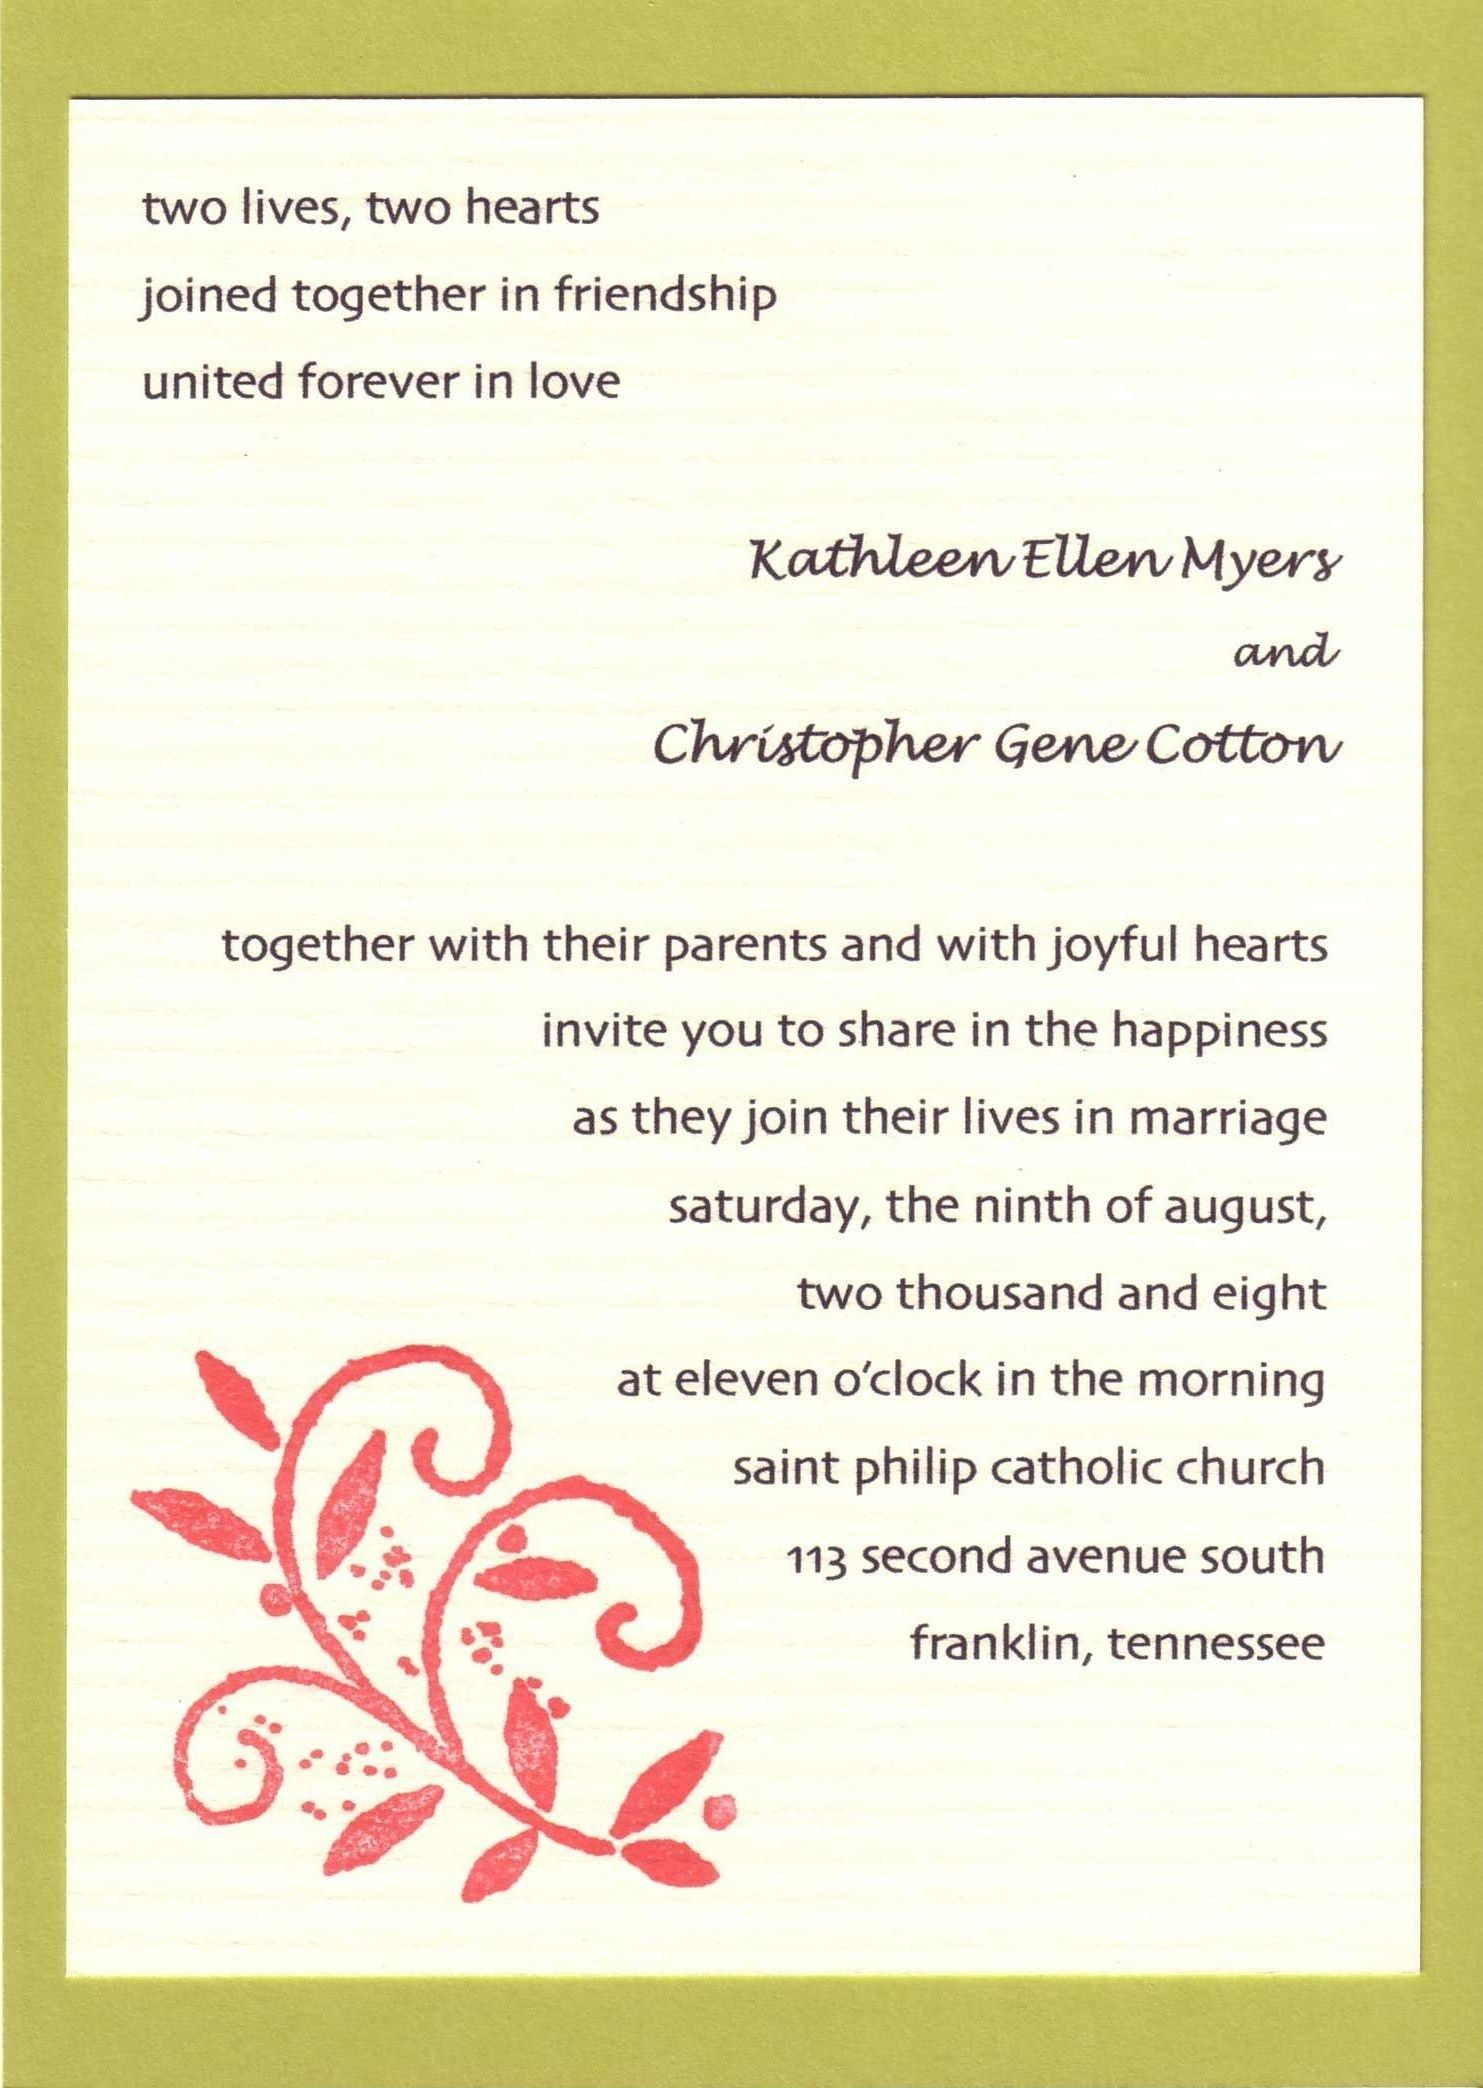 Pin by anggunstore on Invitation by www